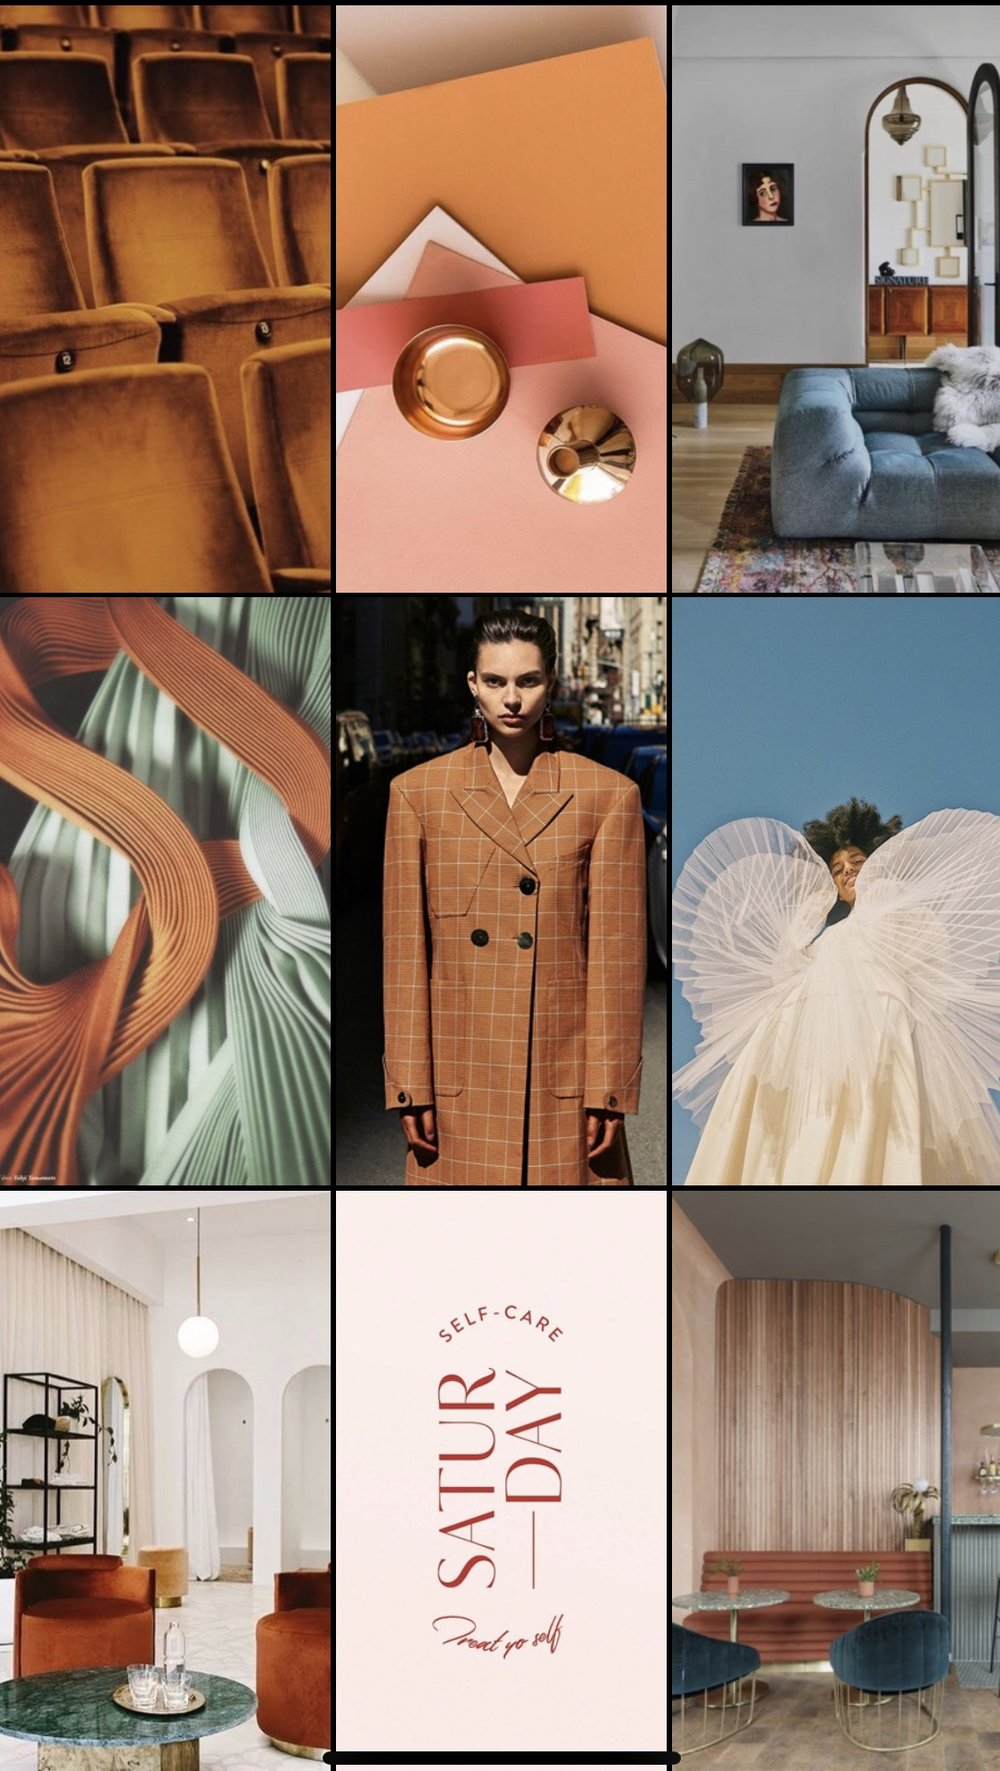 Some of the inspiration images searched for and collected on Pinterest.